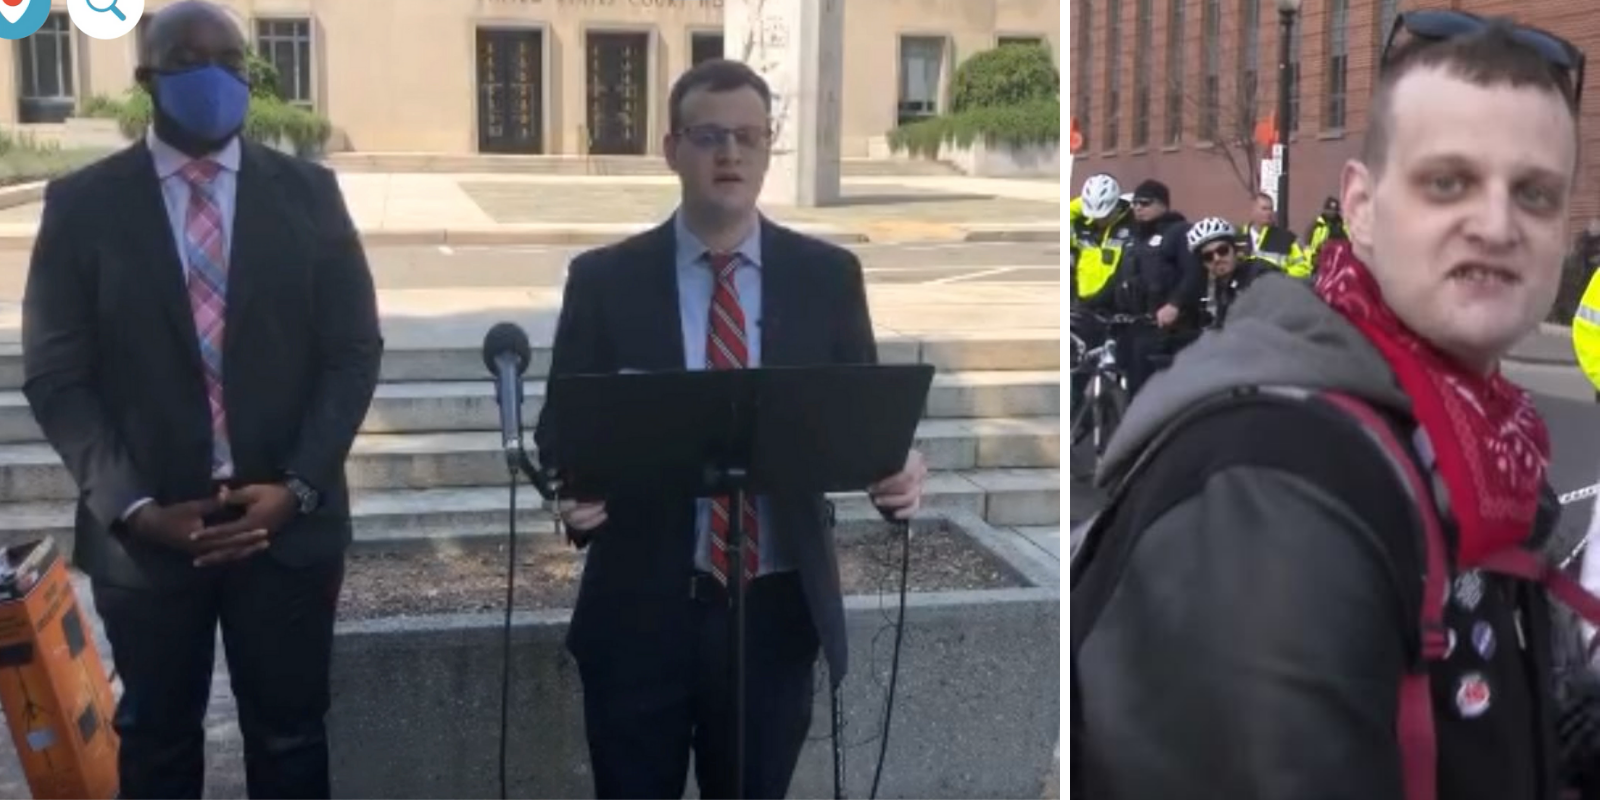 Antifa uses its 'leaderlessness' to gaslight public and officials into believing it doesn't exist